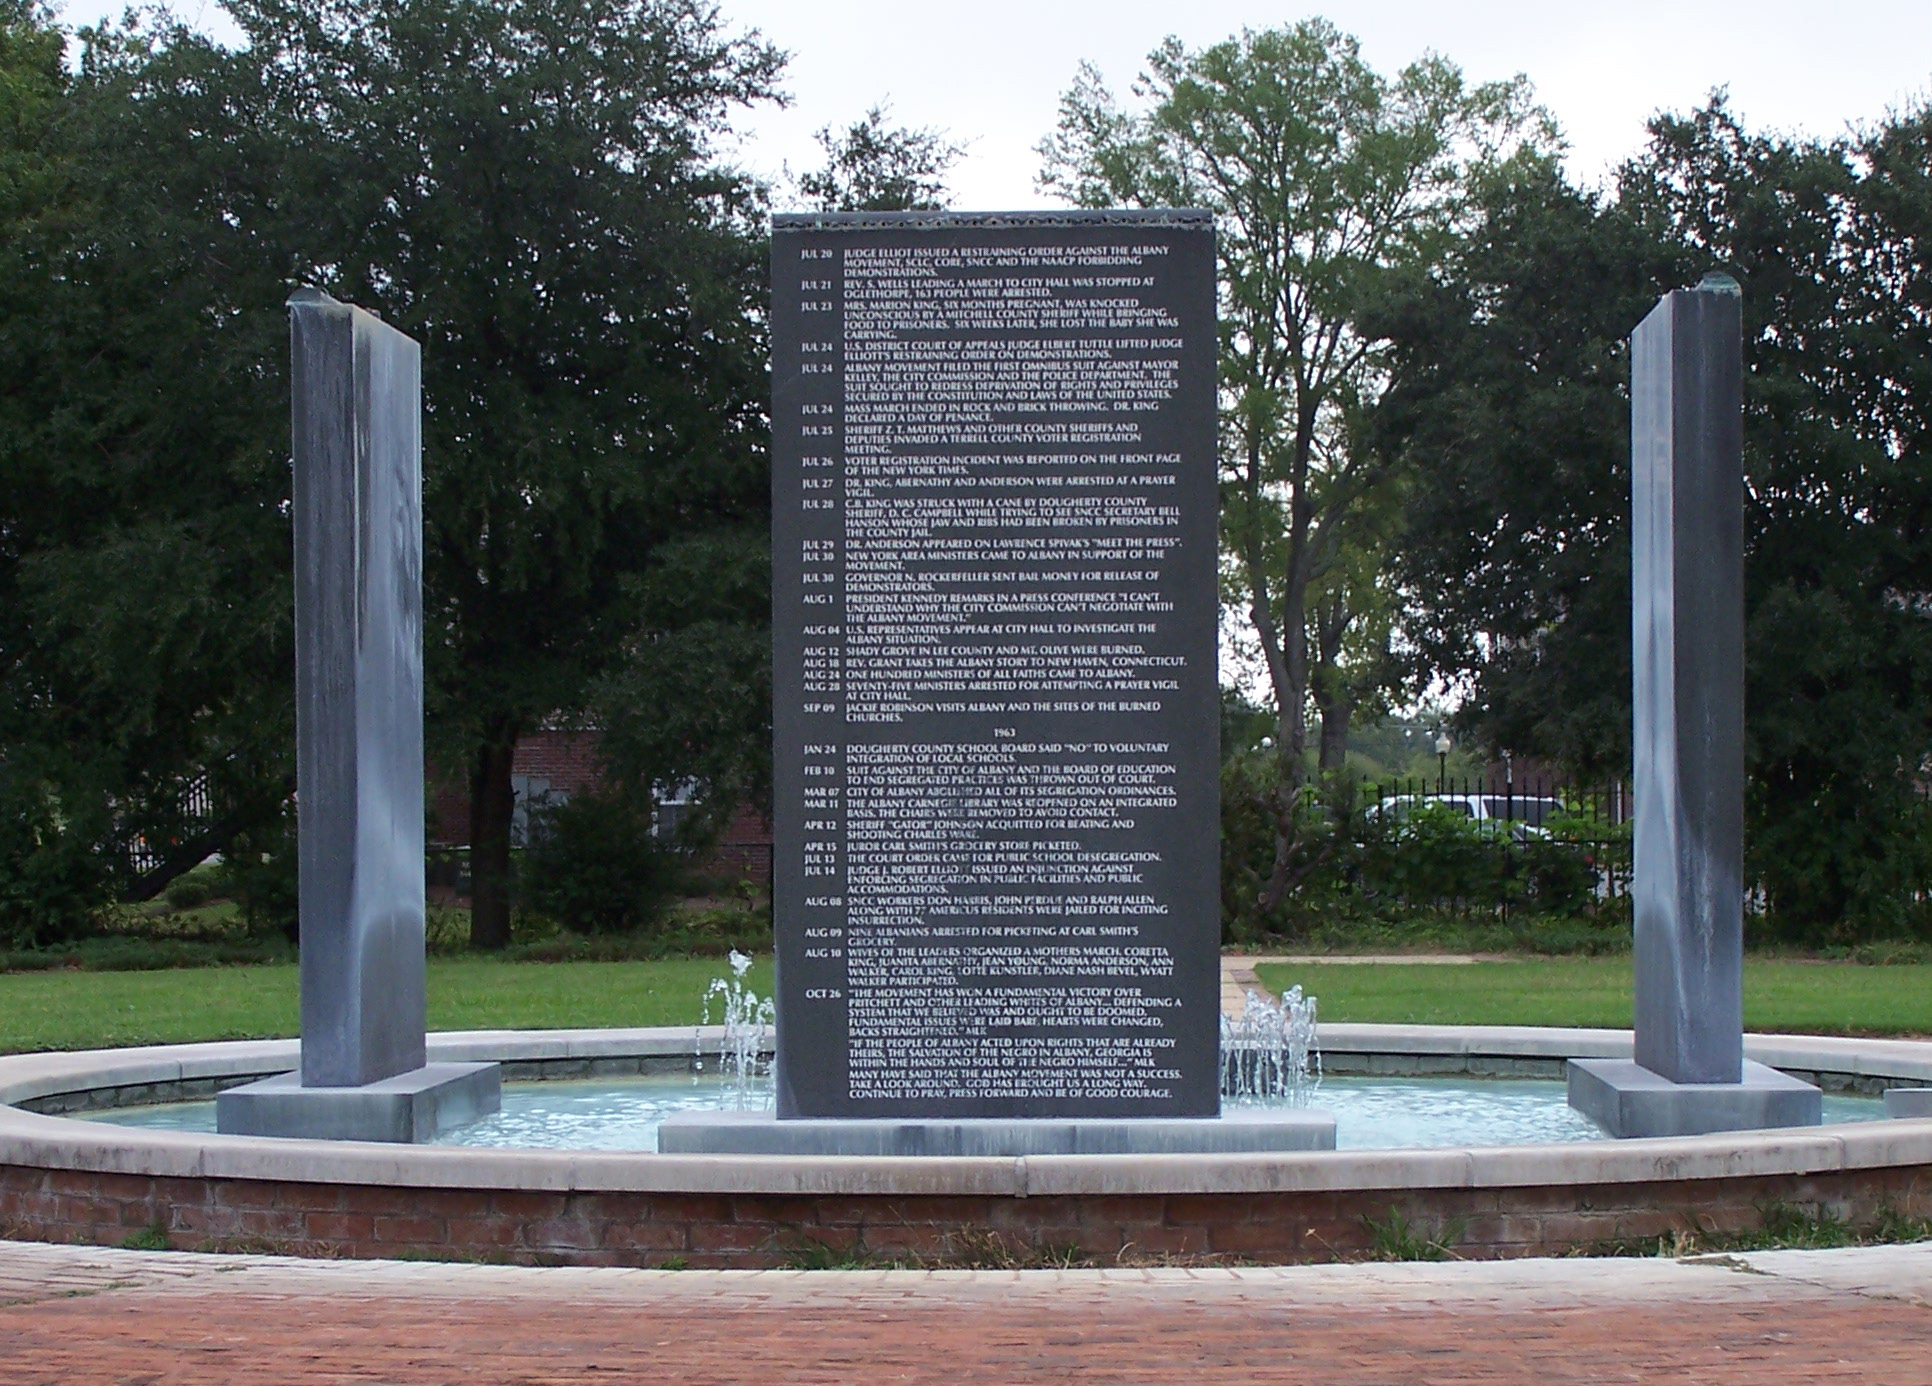 Albany Civil Rights Movement Memorial